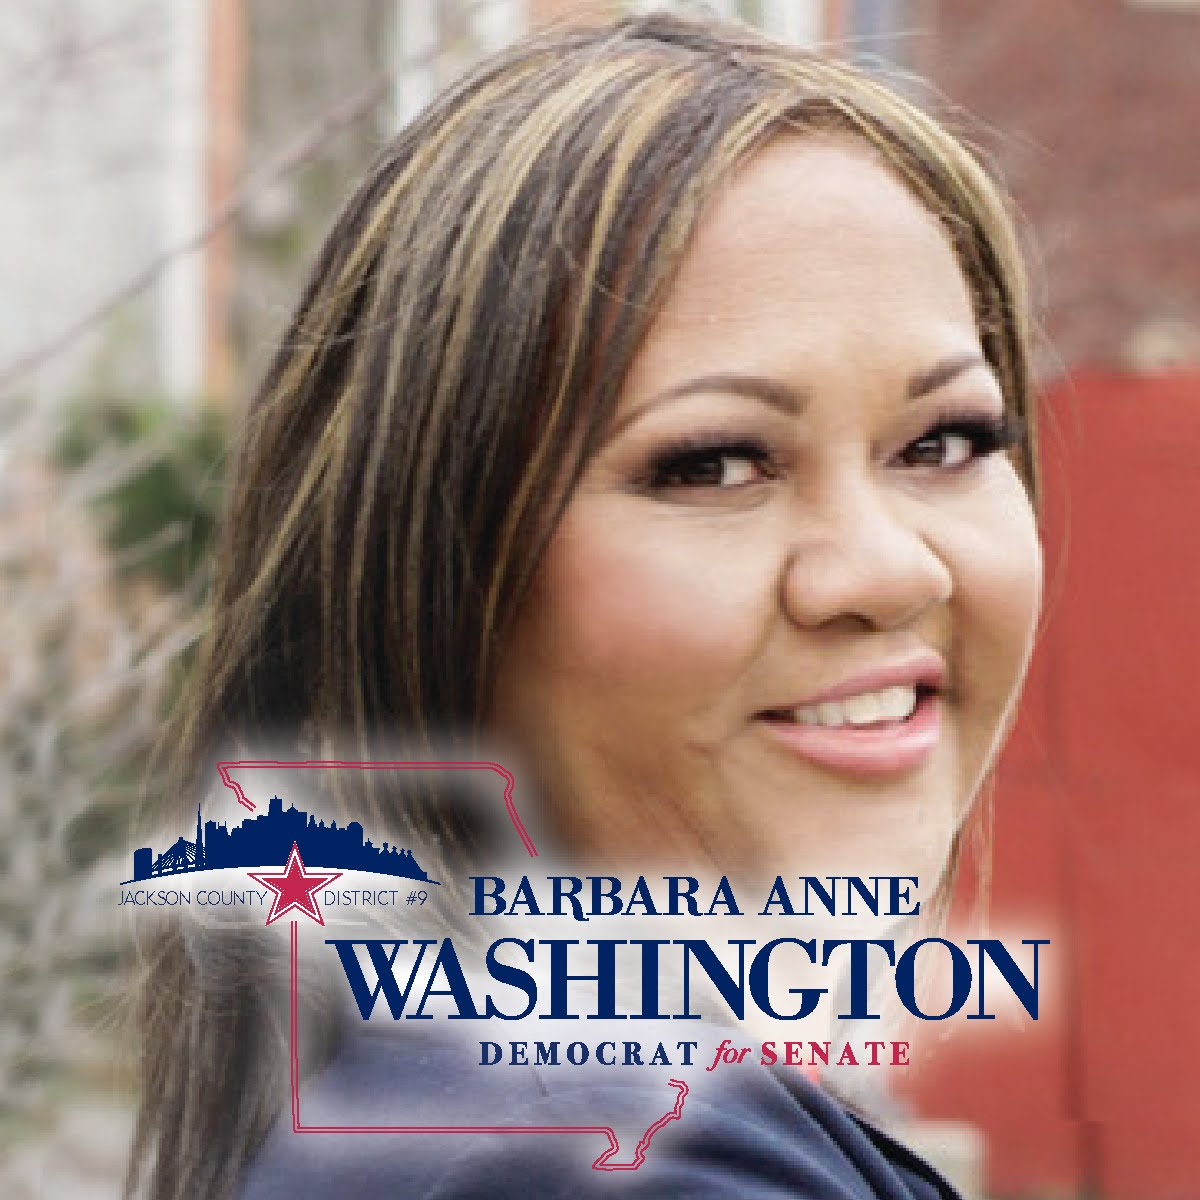 Barbara Anne Washingon for Senate